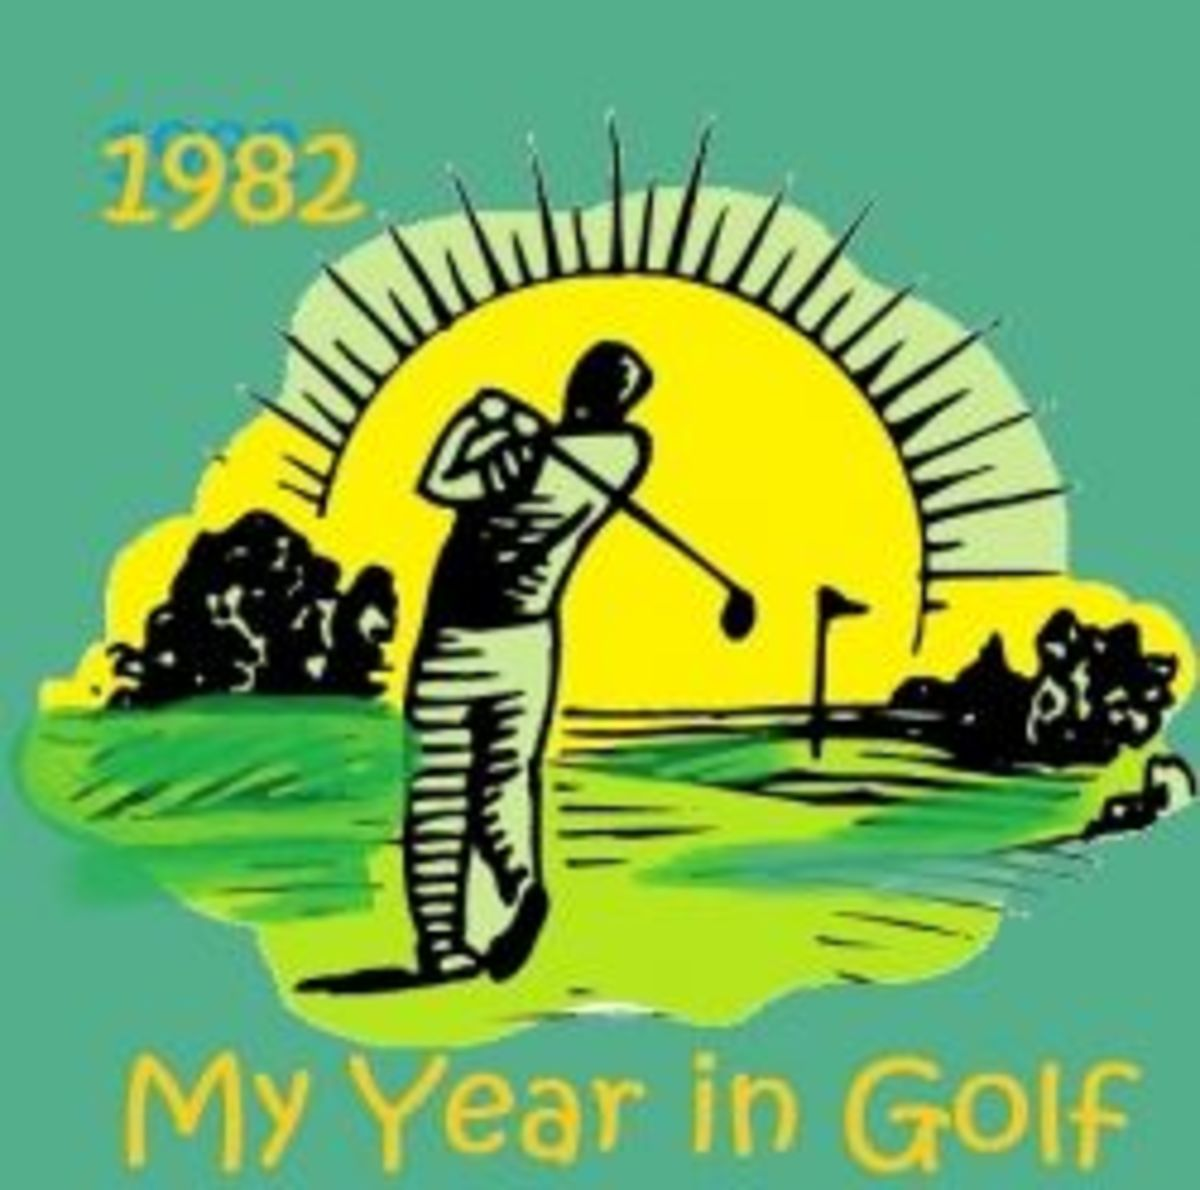 1982 My year in golf